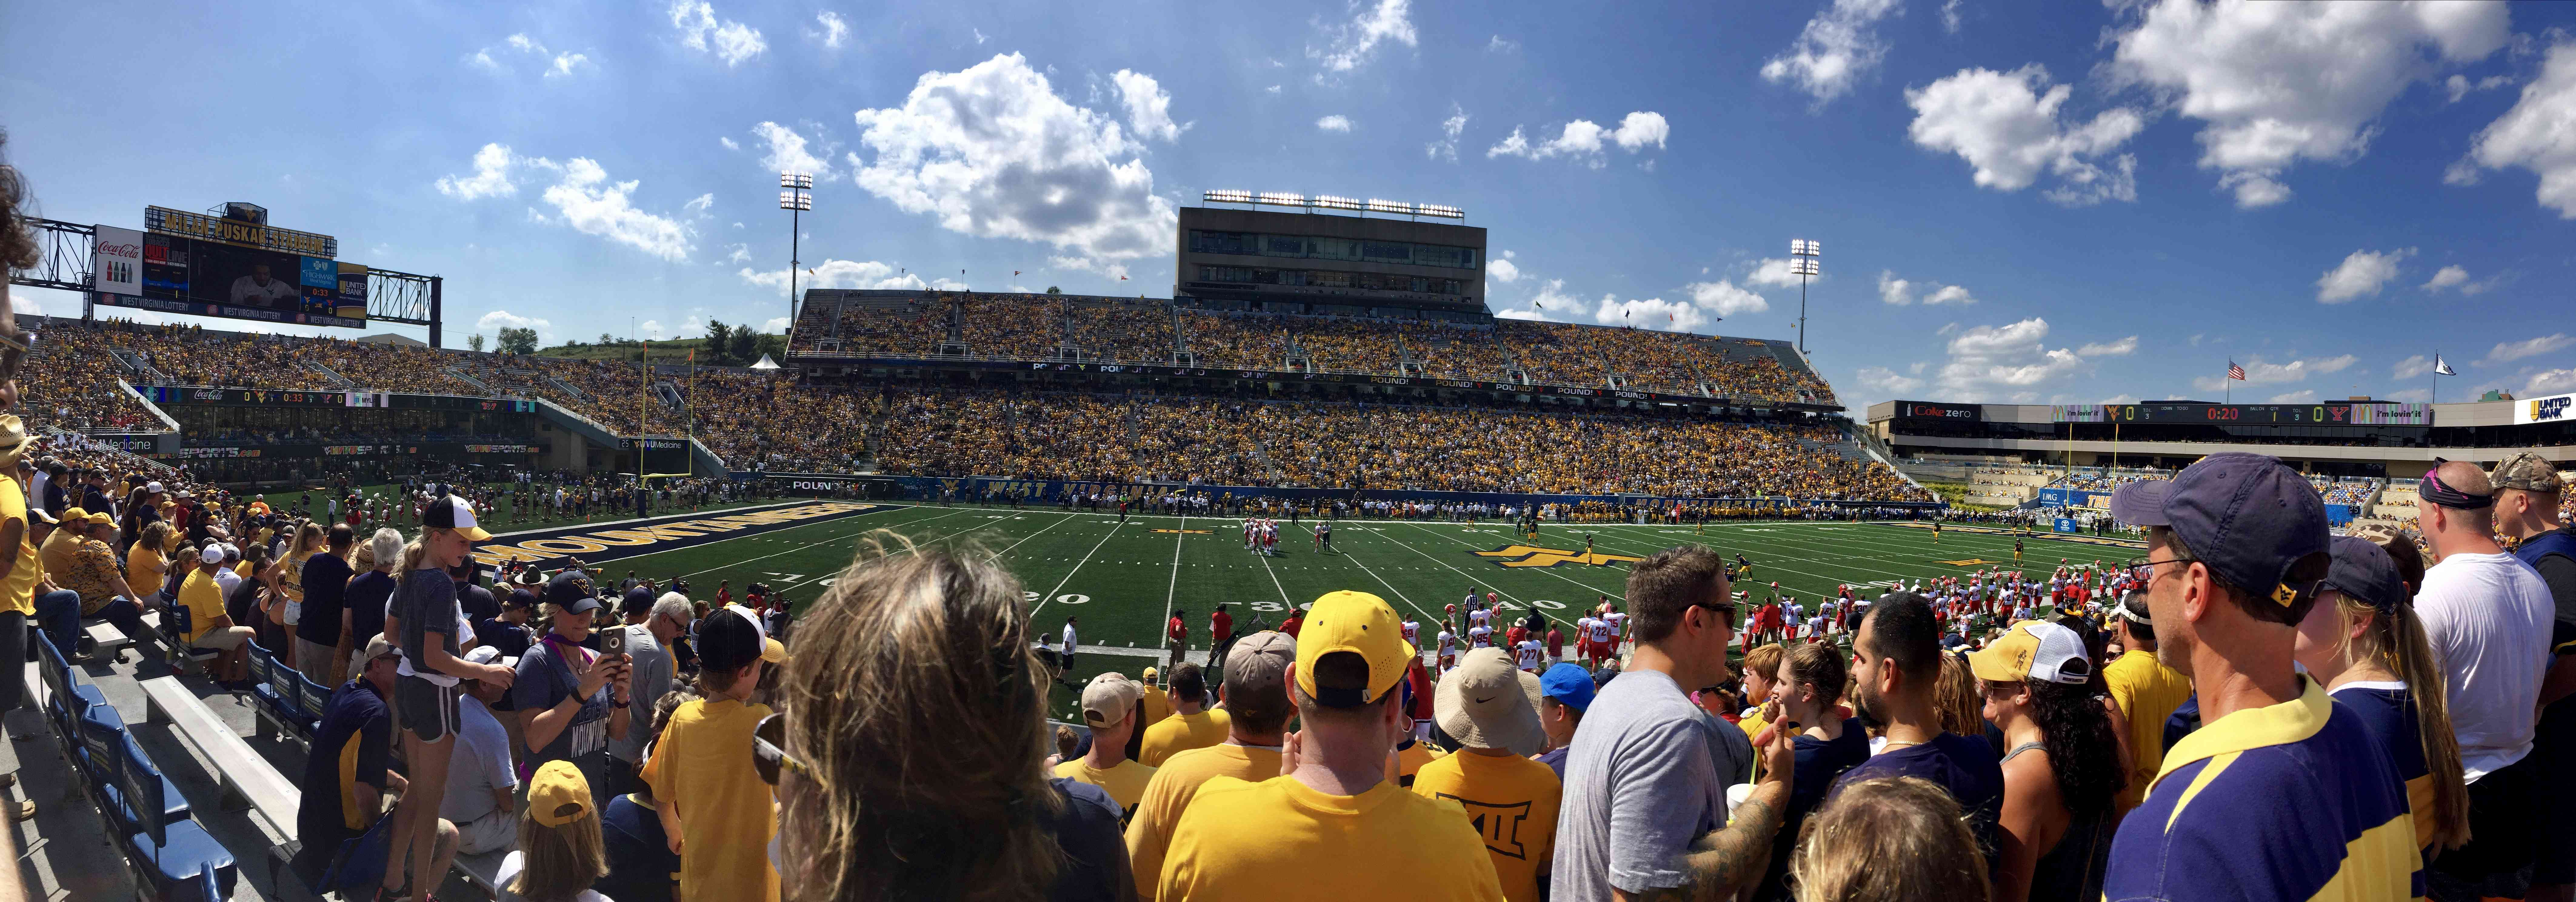 The town triples in size on game days to watch the WVU football team, which is part of the Big 12 conference.